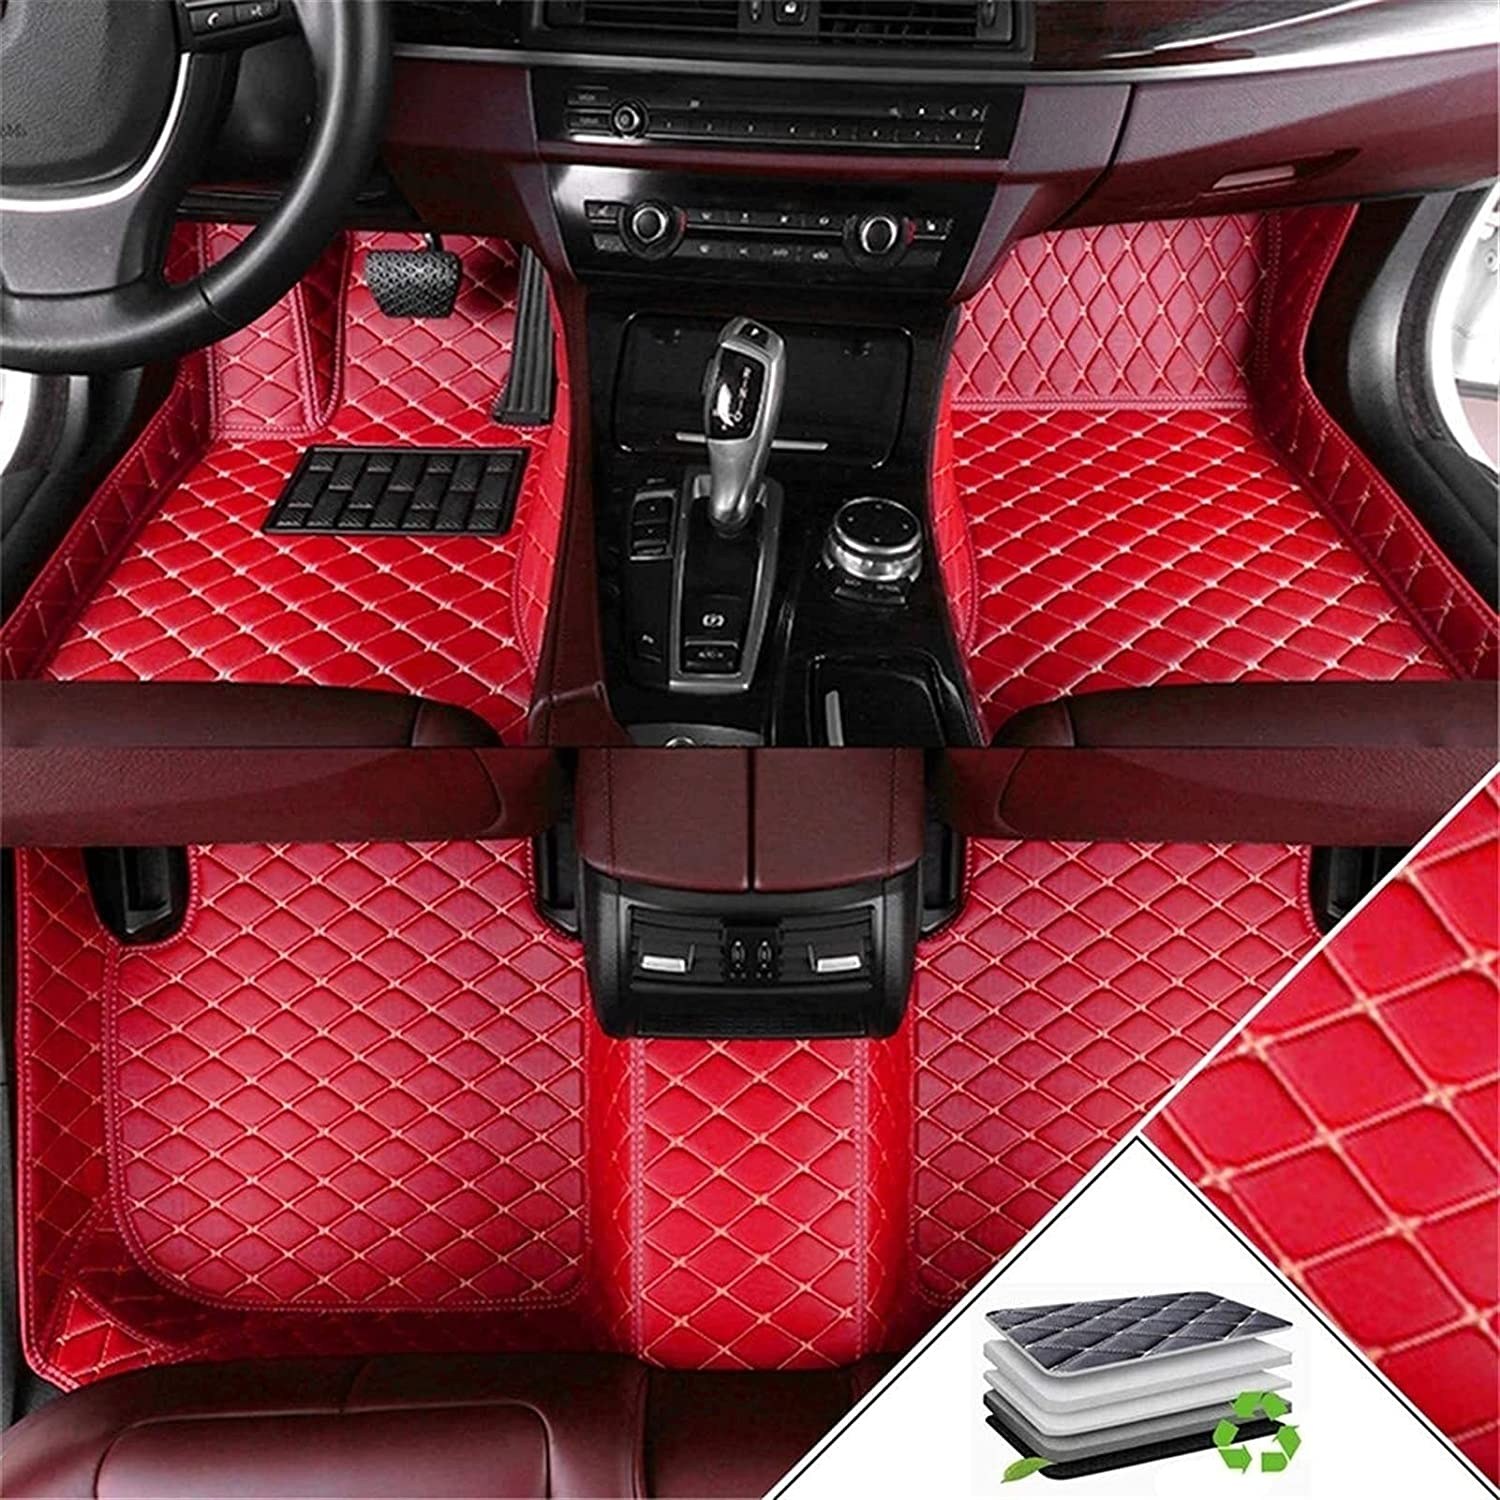 ADLIN Custom Car Floor Mats with Cheap mail order sales 2018-20 Toyota Camry Compatible Cash special price